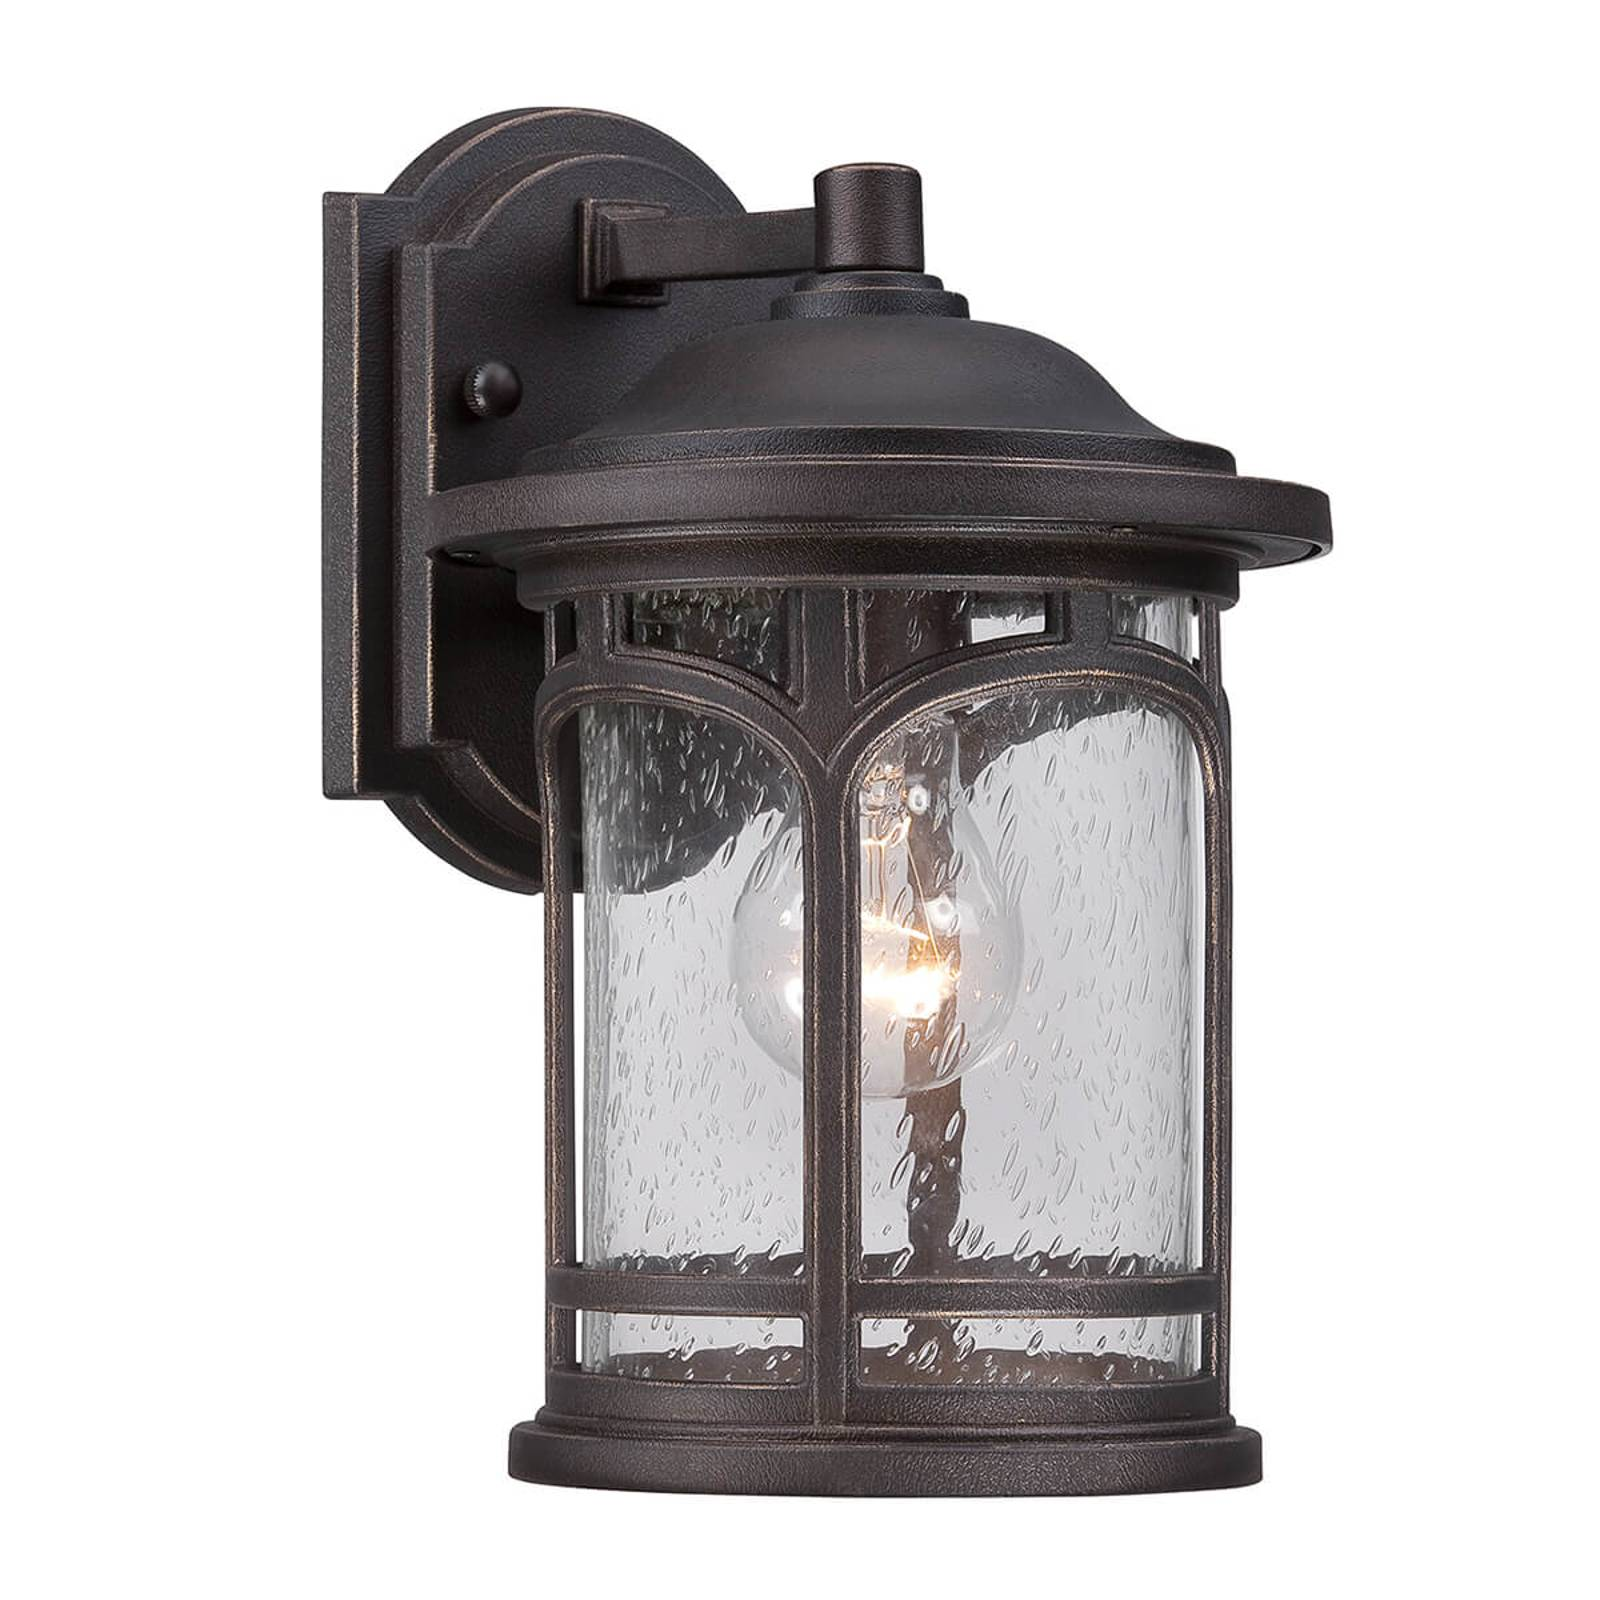 Marblehead - small wall light for outdoors, 28 cm from QUOIZEL